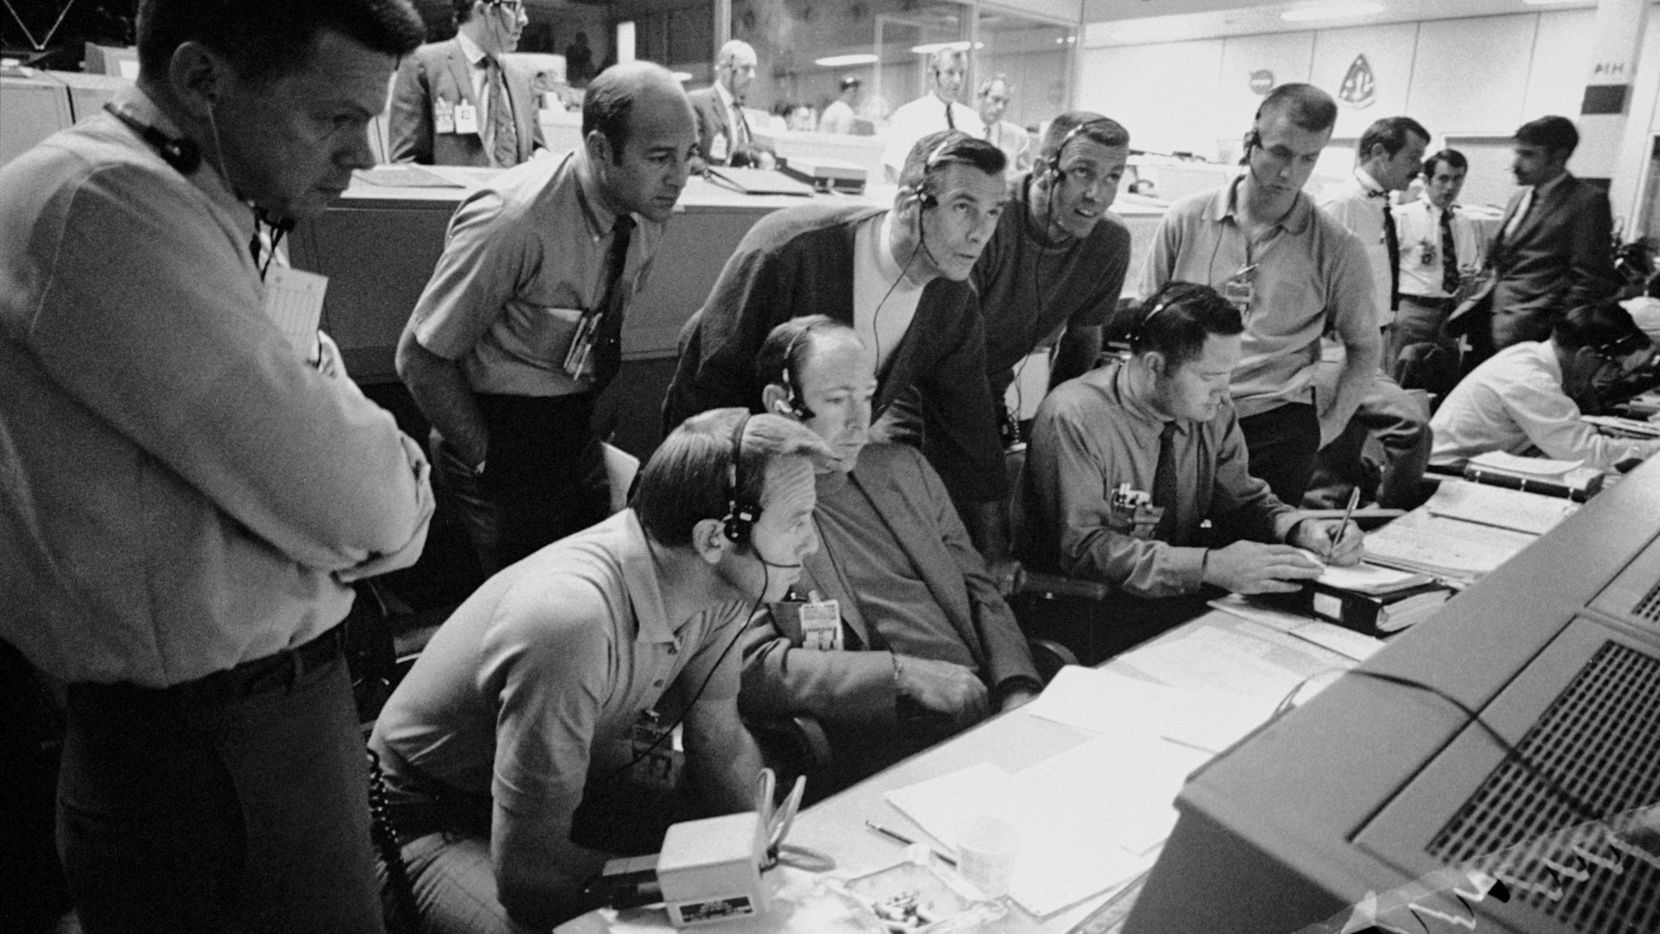 NASA astronauts and flight controllers monitored the problem-plagued Apollo 13 mission from the Mission Control Center in Houston on April 14, 1970.